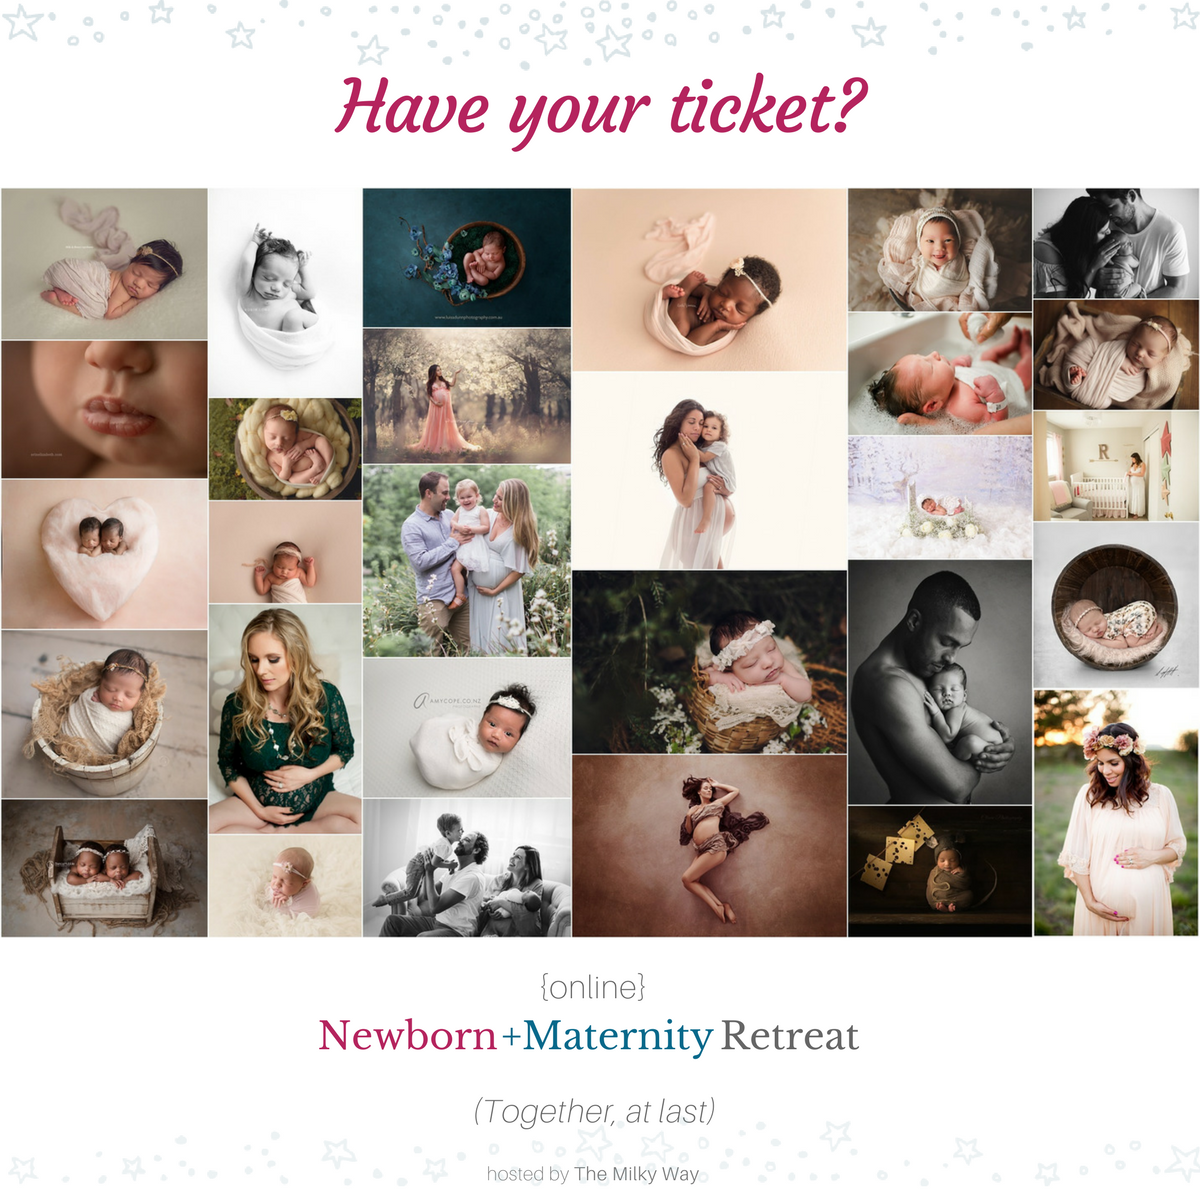 You + Me + 30 other newborn + maternity photographers = AMAZING learning opportunity!   Early-bird sale is on now for the 2018 {online} Newborn + Maternity Retreat - but ONLY until Feb 2nd!  Get your ticket right here - Click this link:   https://fq140.isrefer.com/go/2018NewbornRetreat/mstief/